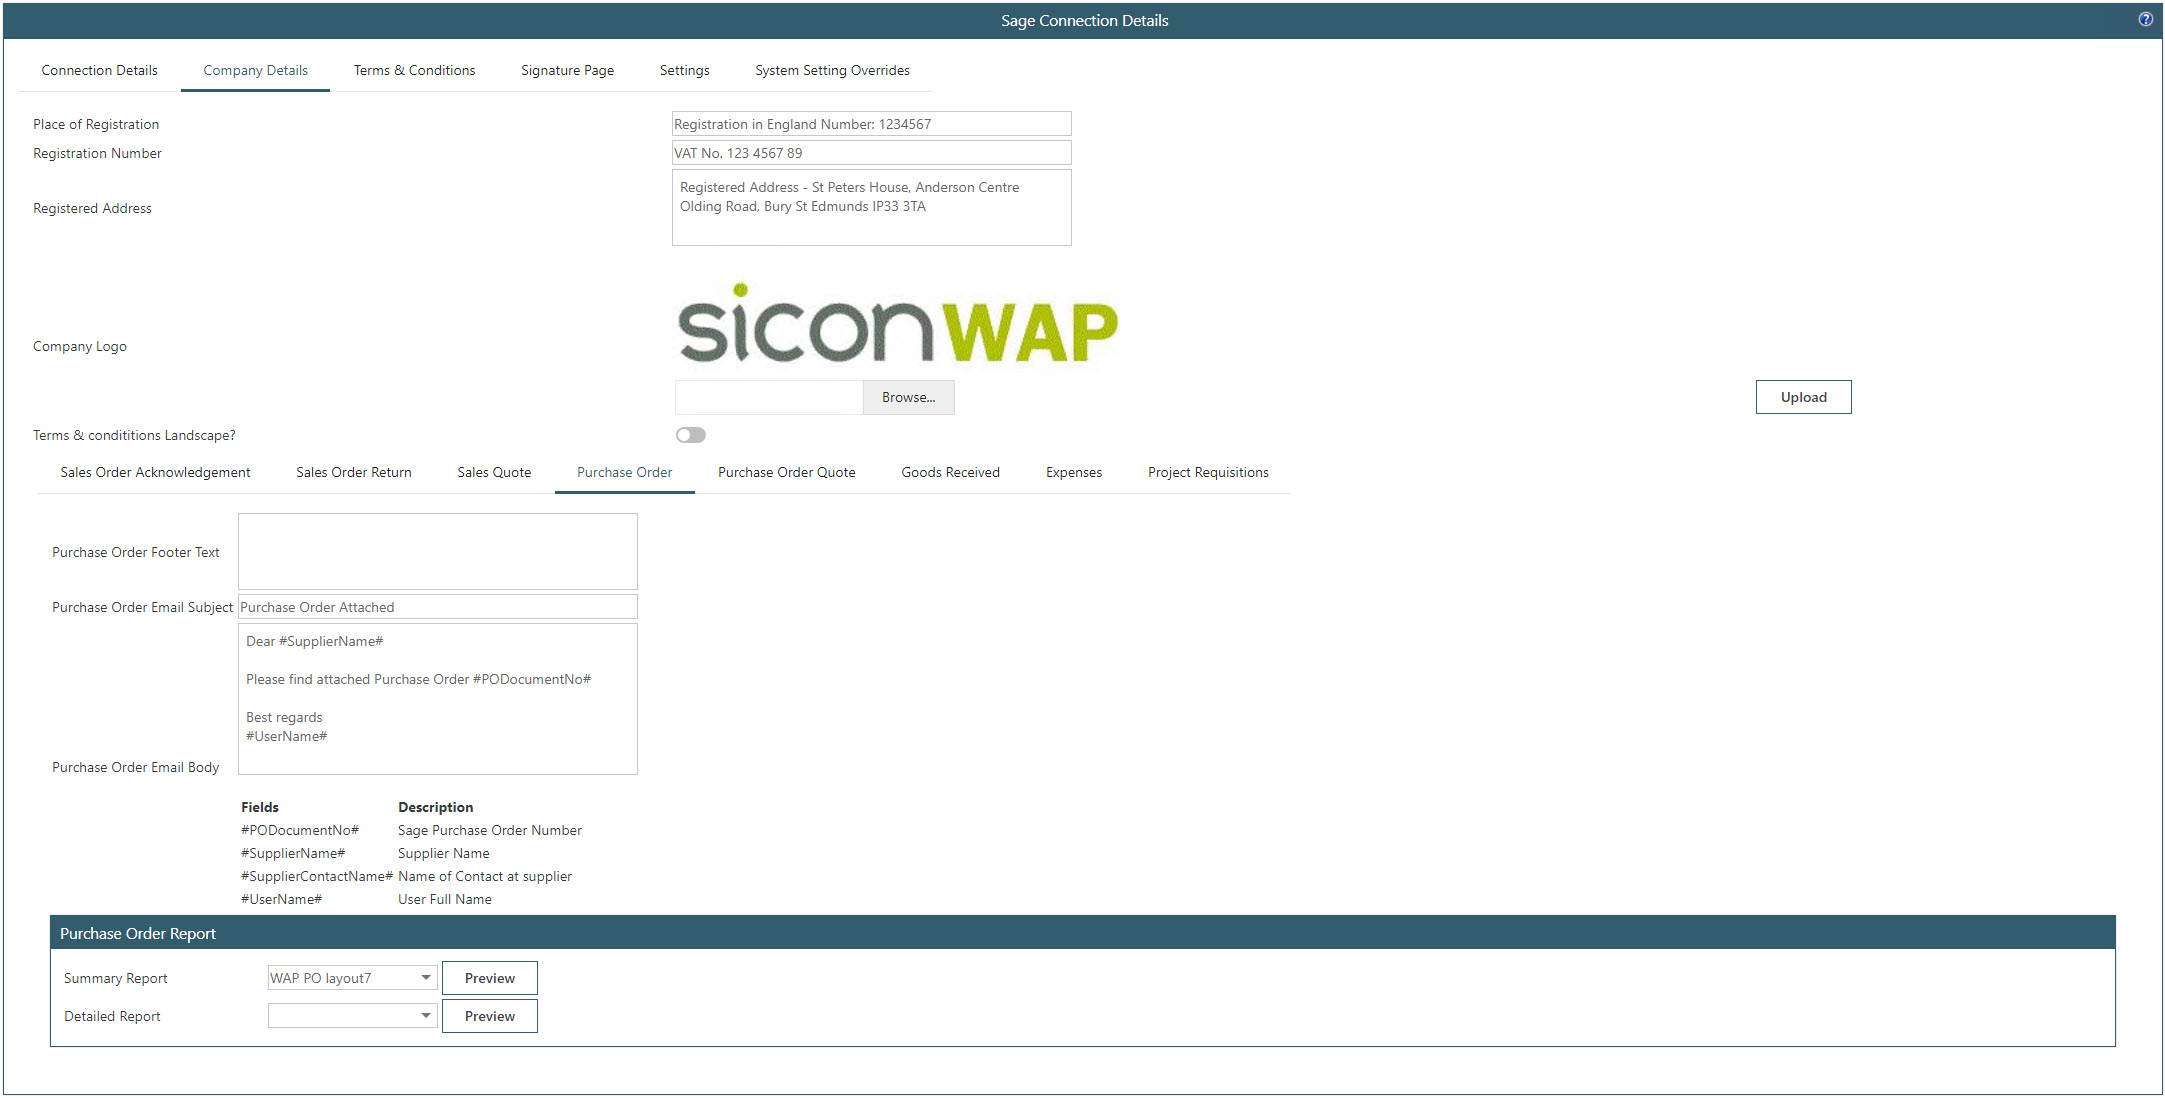 Sicon WAP Purchase Requisitions Help and User Guide - Requisition HUG Section 9.4 Image 2